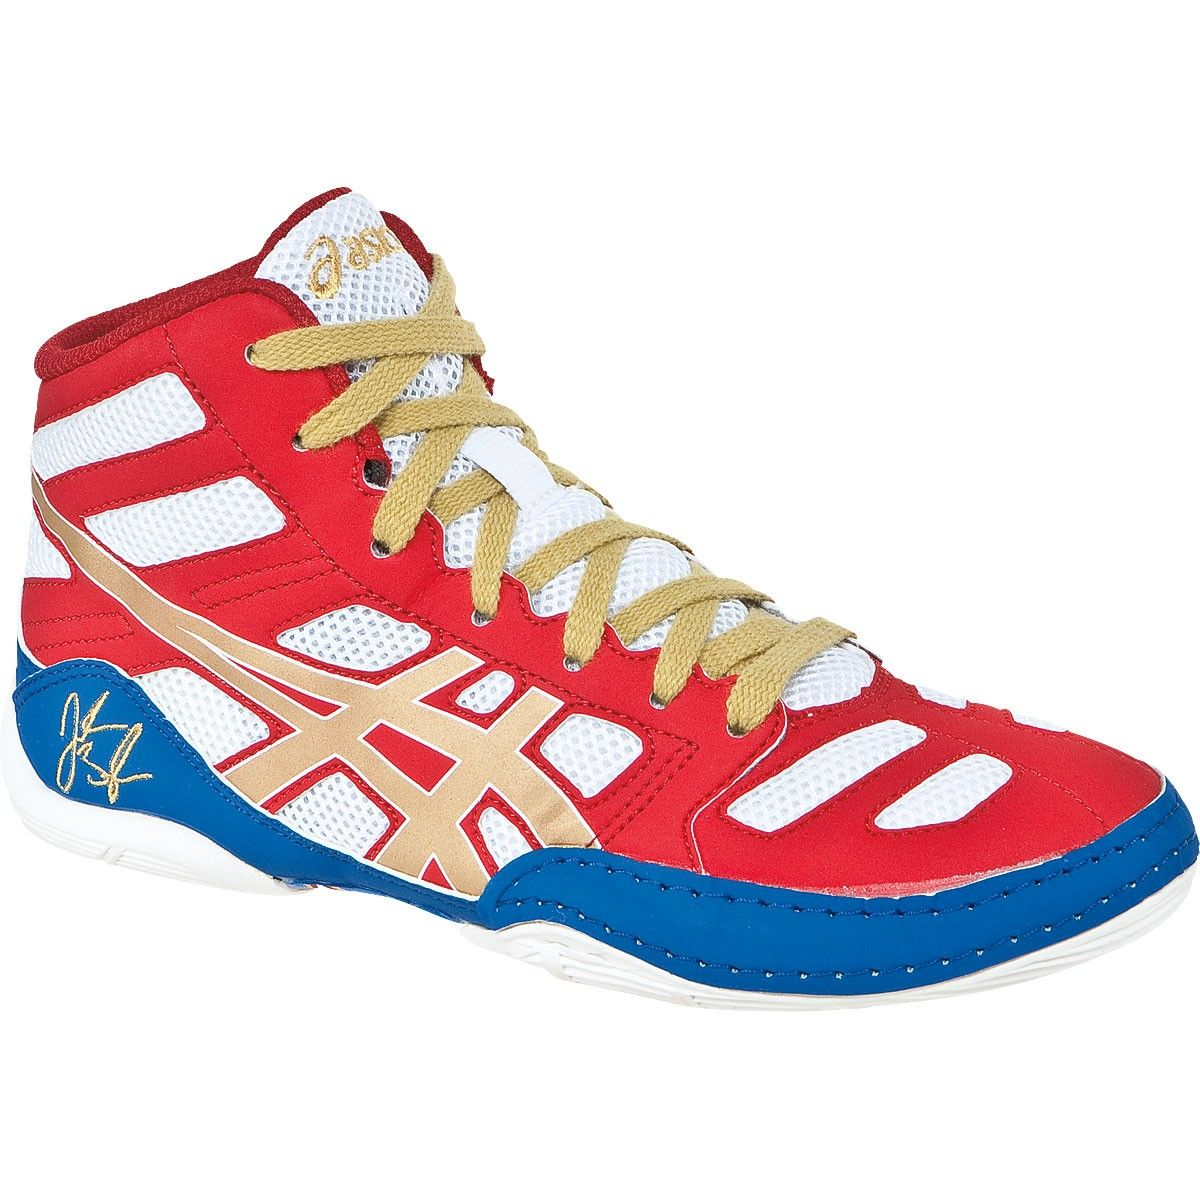 796ac9e7edb Asics JB Elite GS Jordan Burroughs Youth Wrestling Shoes